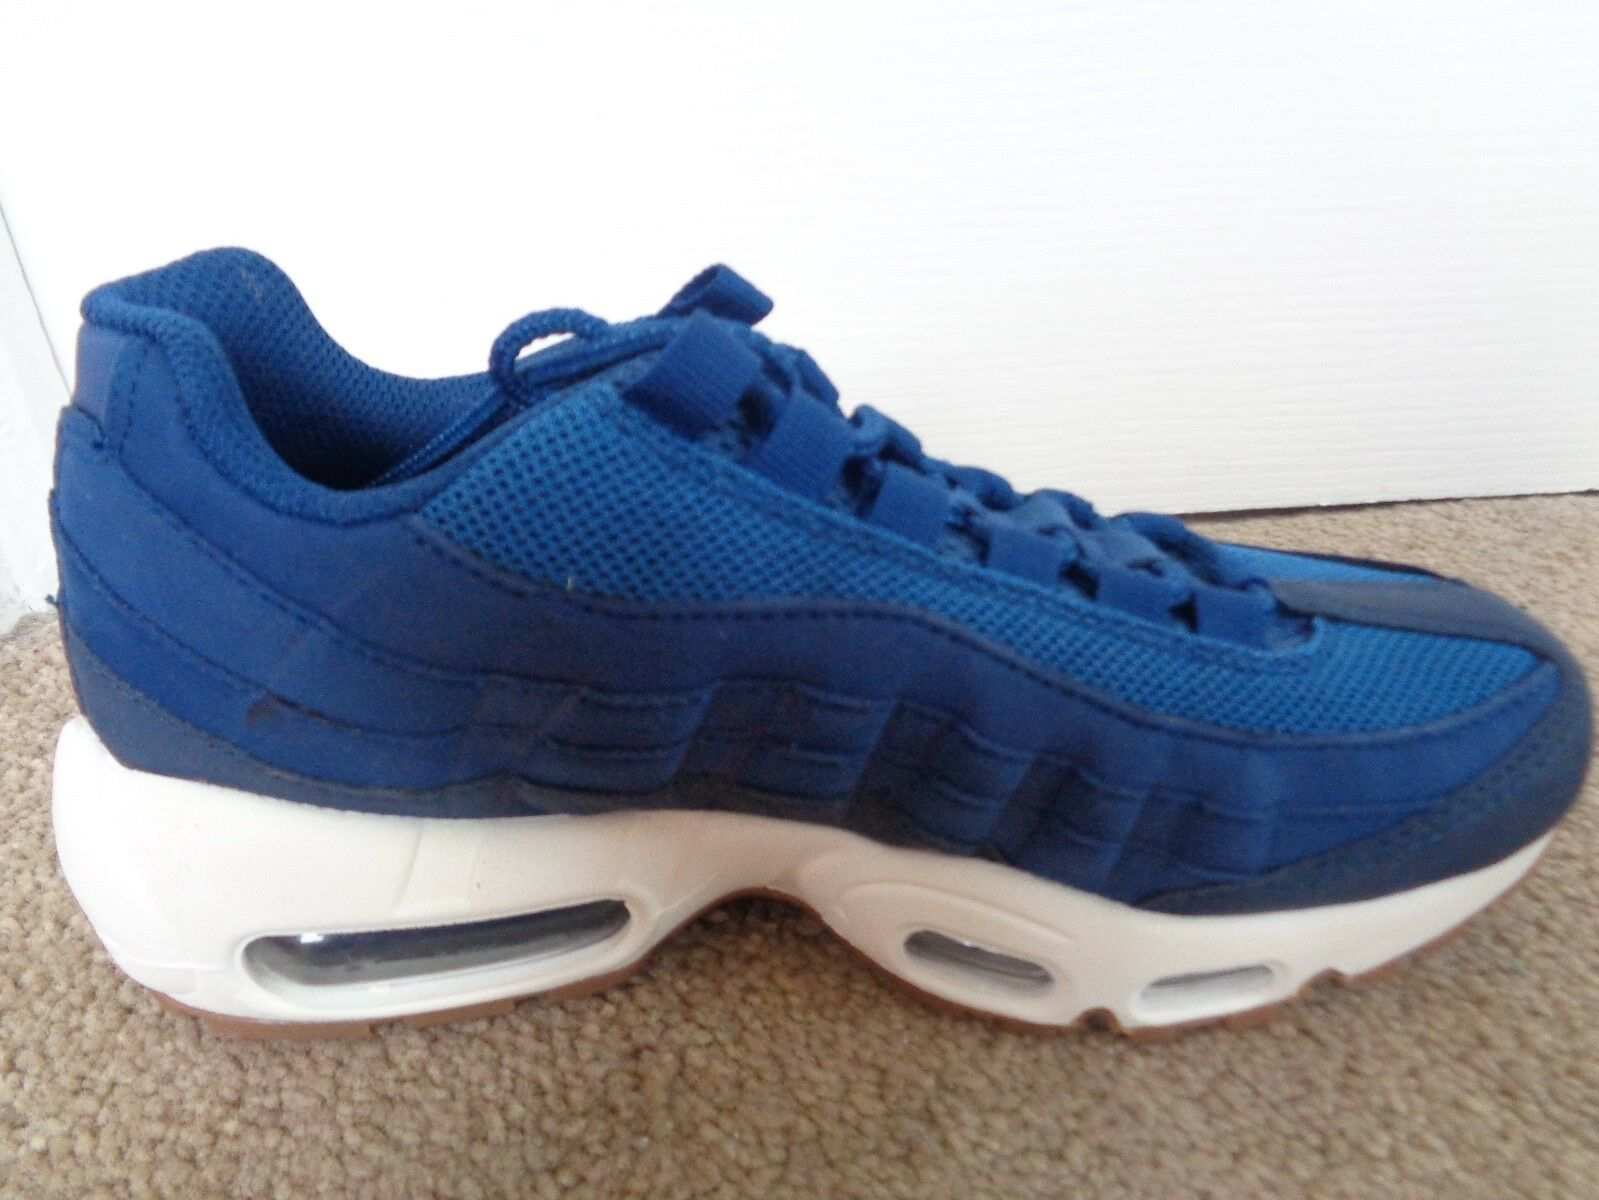 Nike Air Max 95 Damenss schuhe trainers eu 307960 400 uk 3 eu trainers 36 us 5.5 NEW + BOX 21abf9